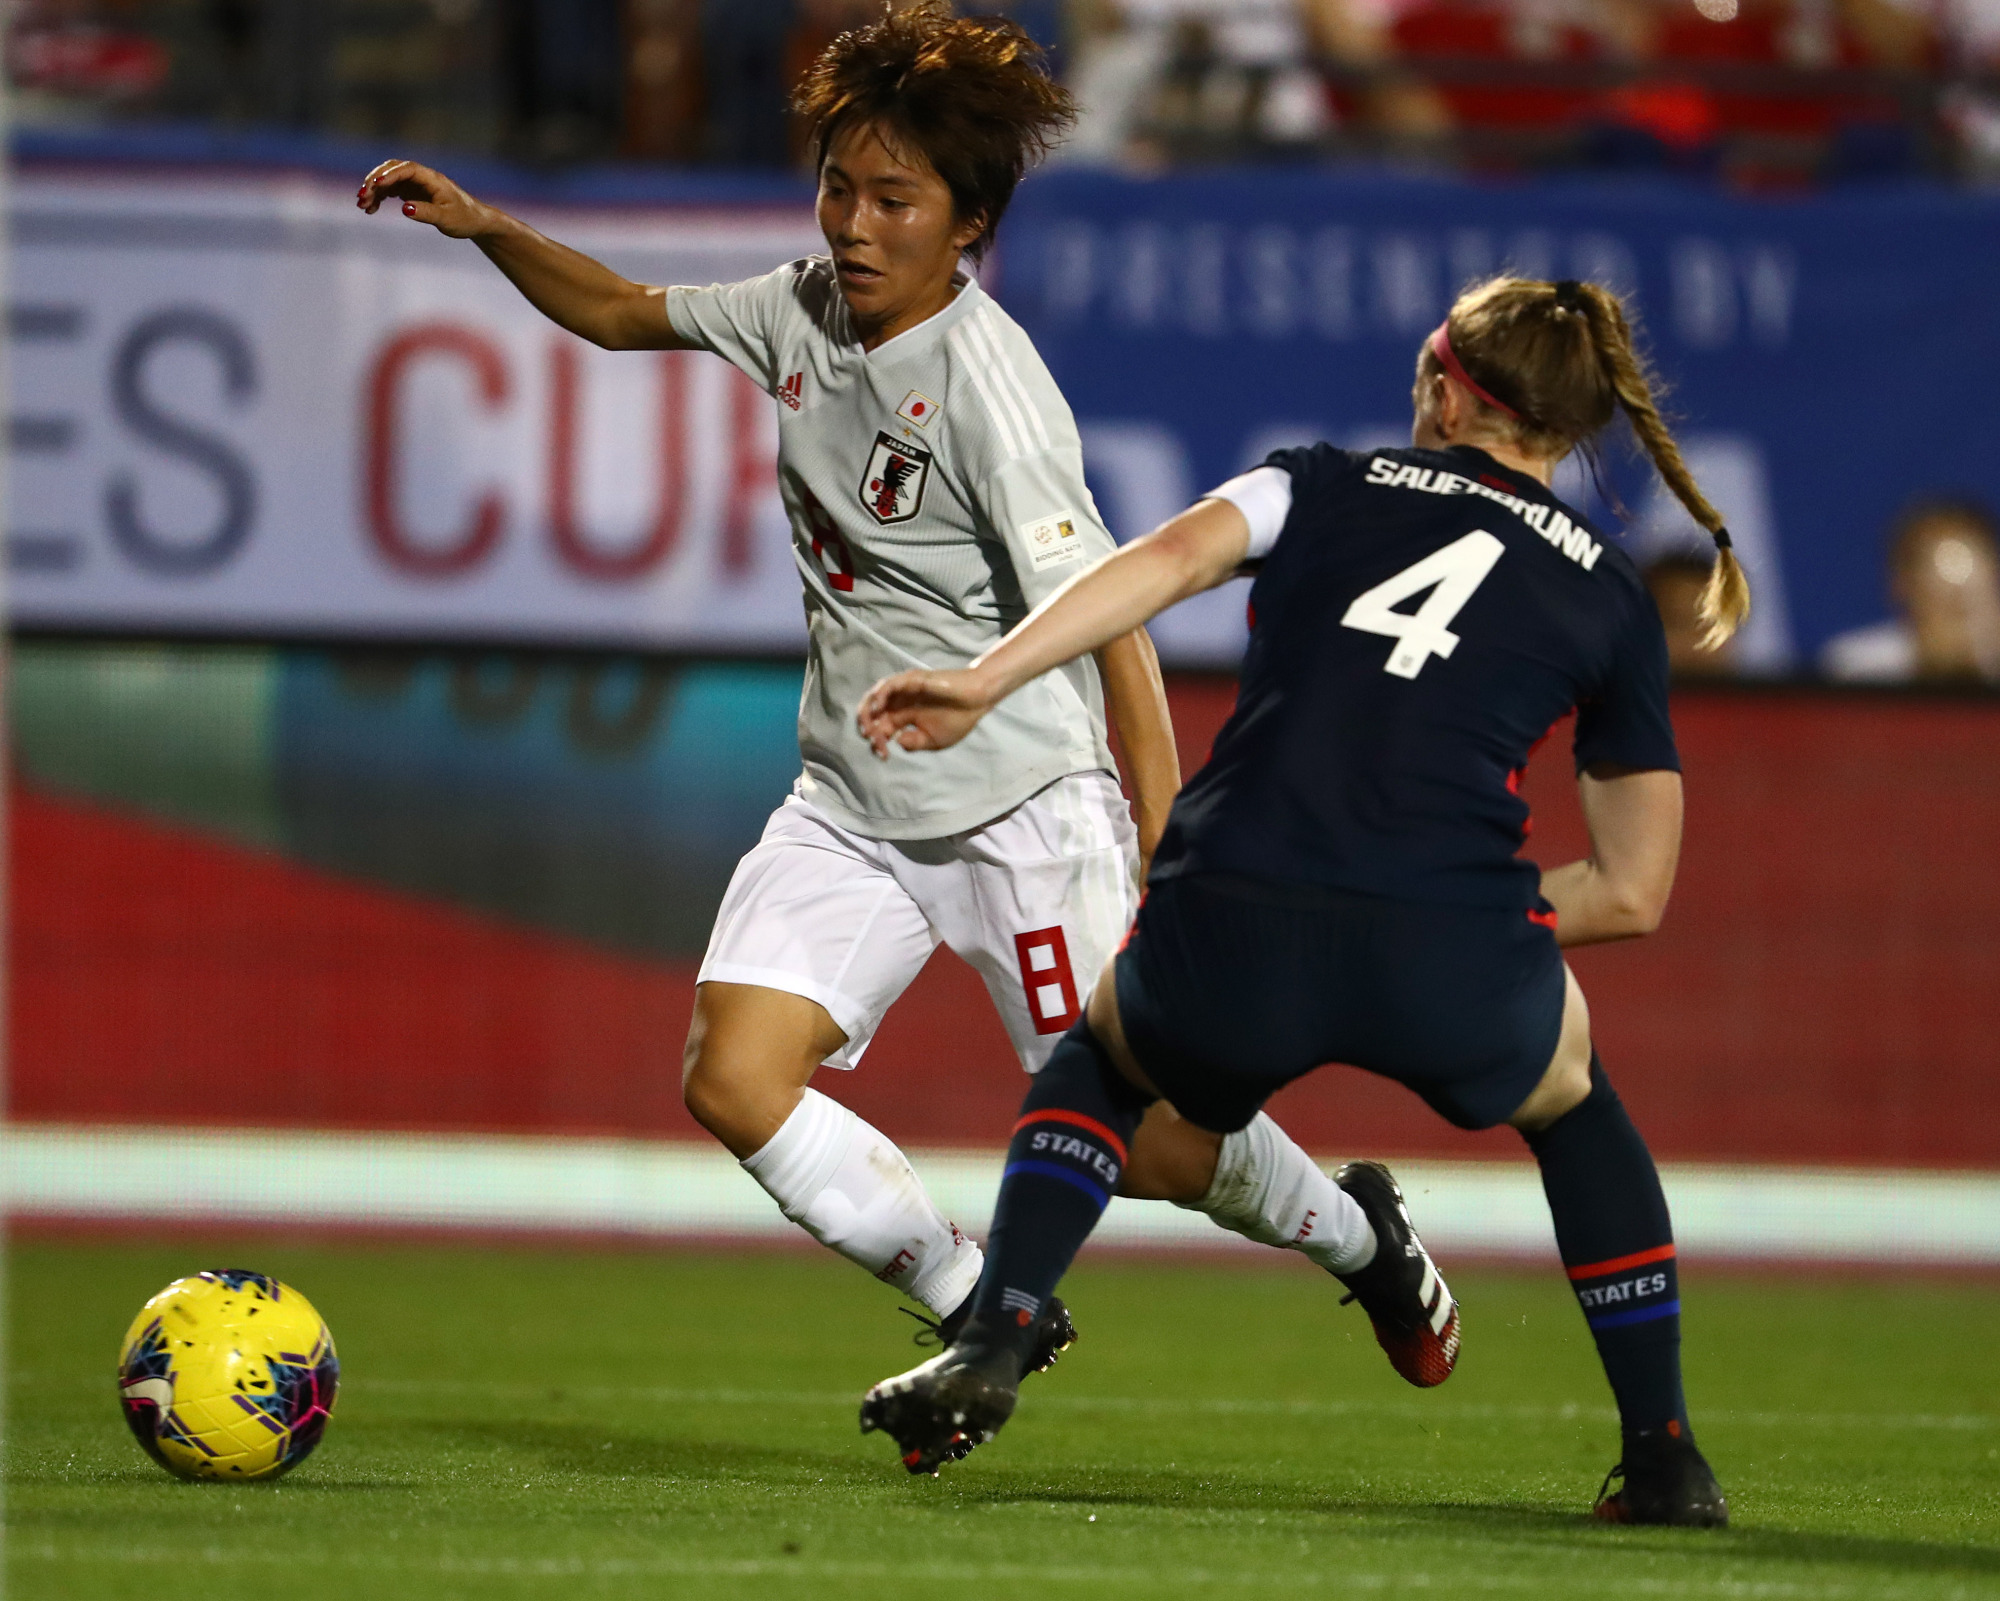 Japan's Mana Iwabuchi controls the ball in the second half against Becky Sauerbrunn of the United States in a SheBelieves Cup match on Wednesday in Frisco, Texas. | USA TODAY / VIA REUTERS